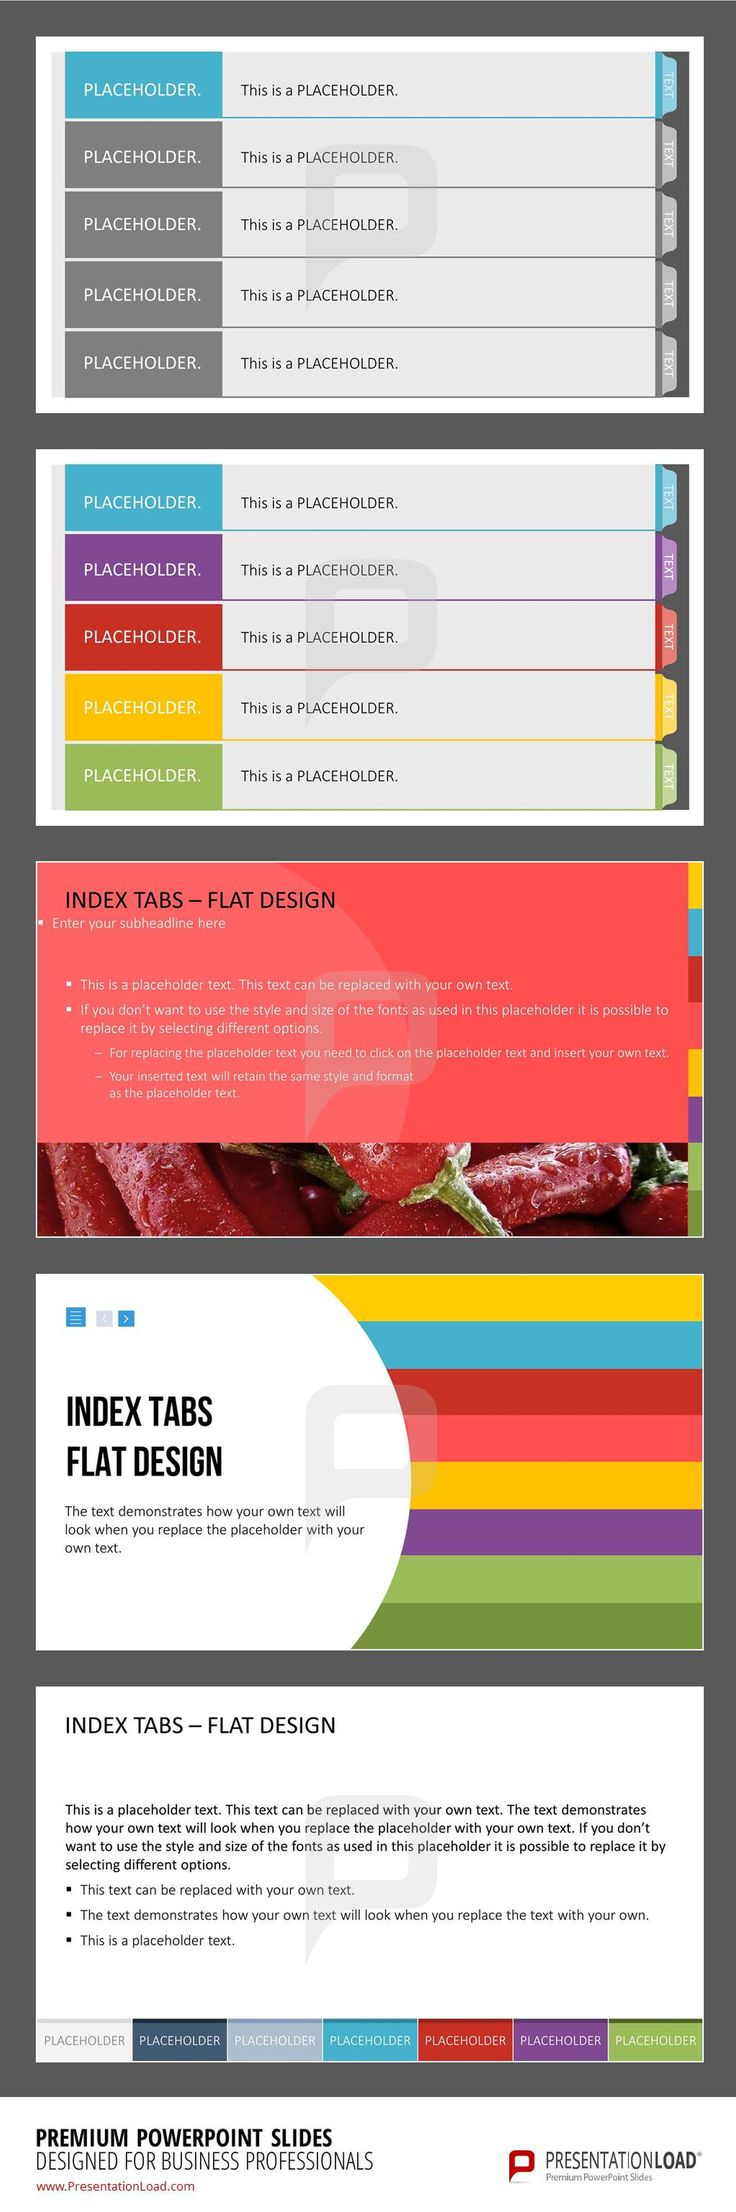 This set of pre-designed Index Tab templates for PowerPoint helps you to navigate easily through your presentation. The tabs provide a good structure that will help you maintain a better overview and to deliver a sophisticated performance. @ http://www.presentationload.com/index-tabs.html